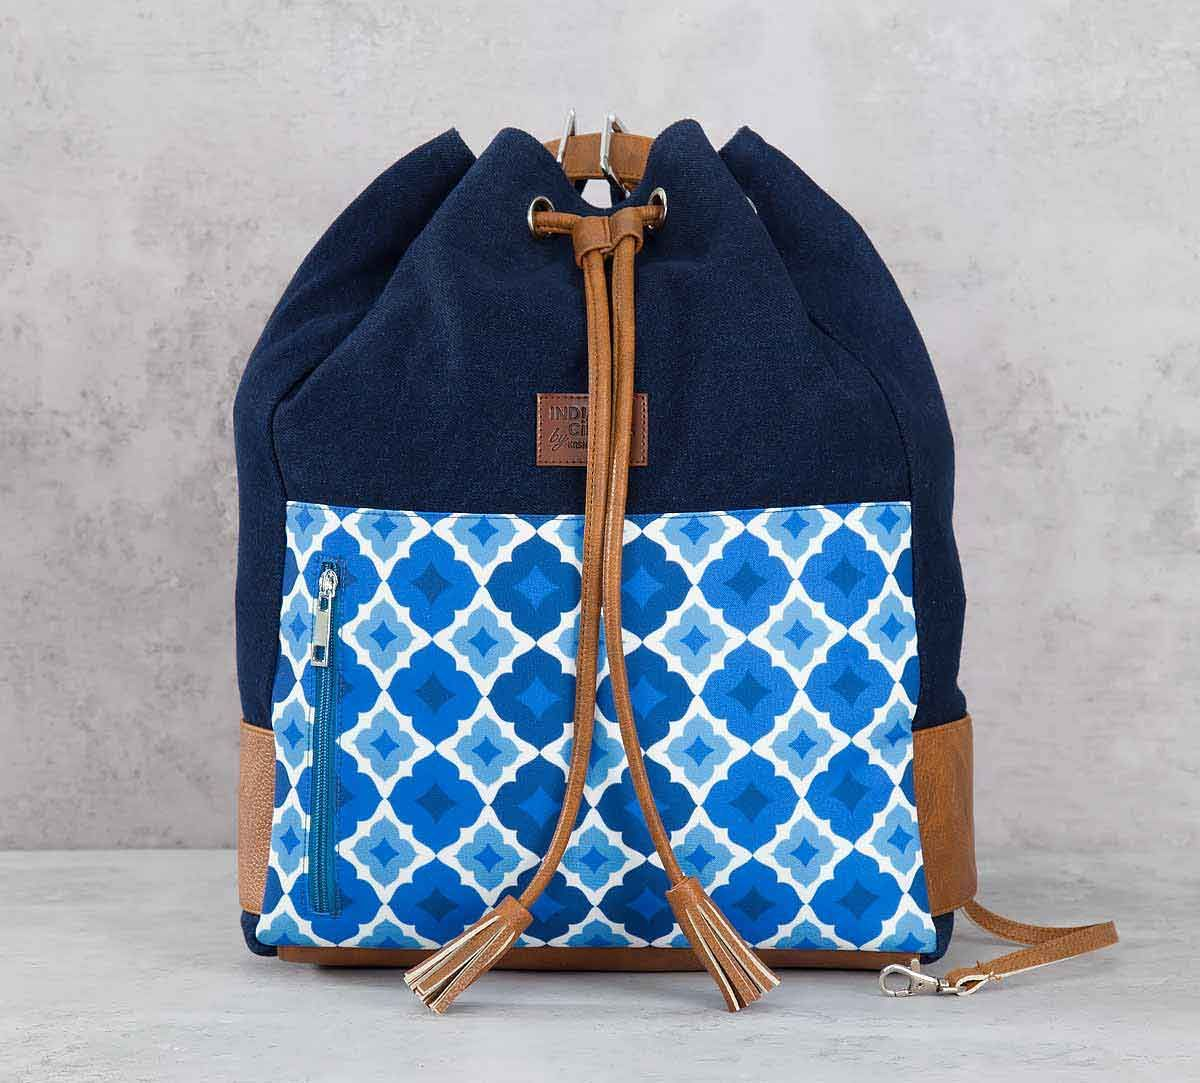 India Circus Ultramarine Tracery Denim Hobo Bag